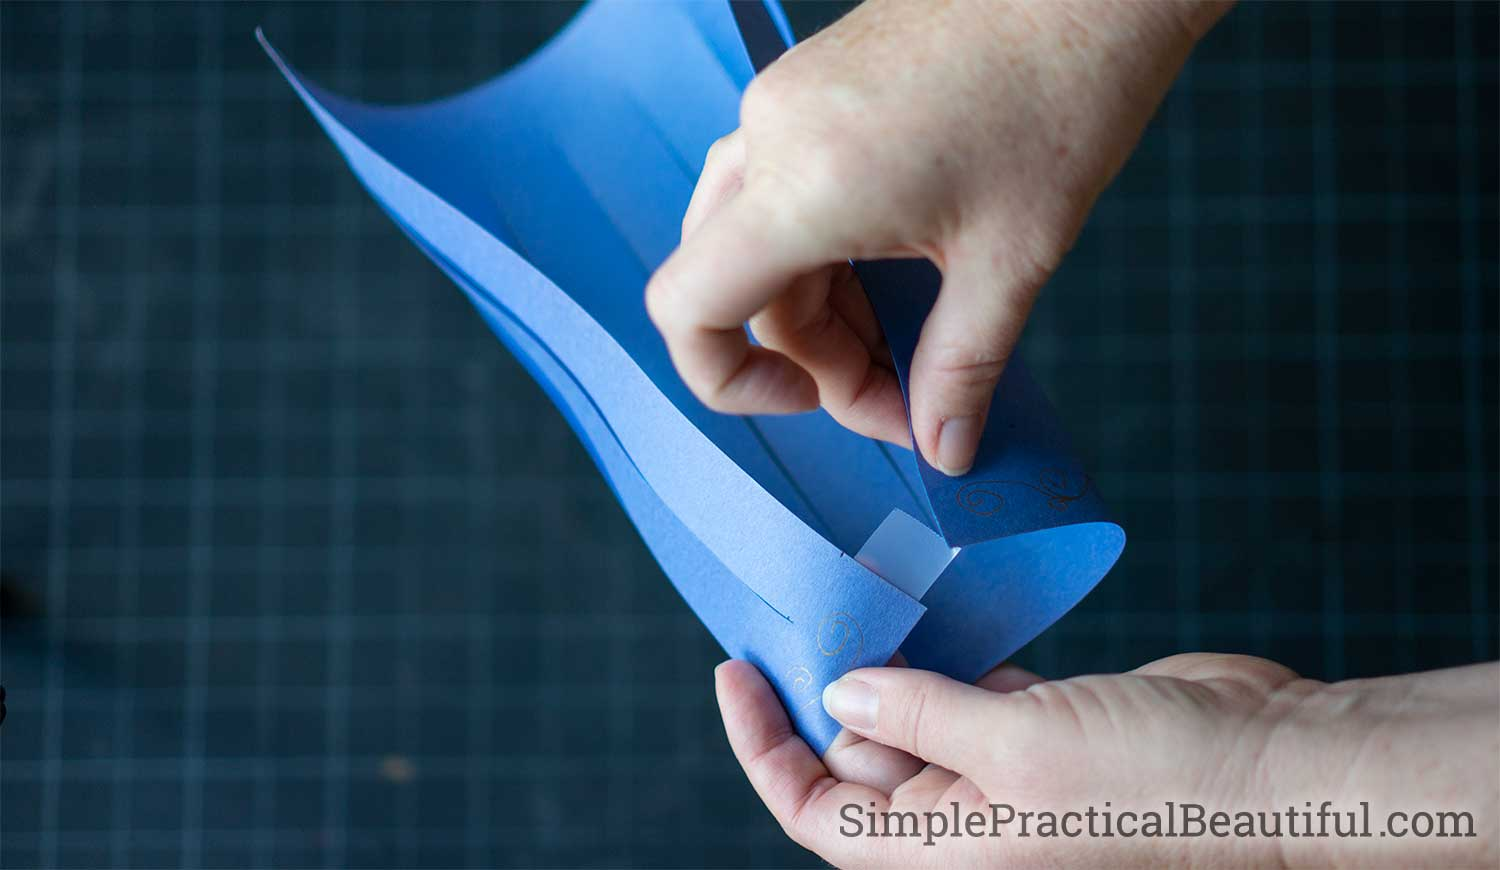 Tape the sides of the paper lantern together at the top and bottom